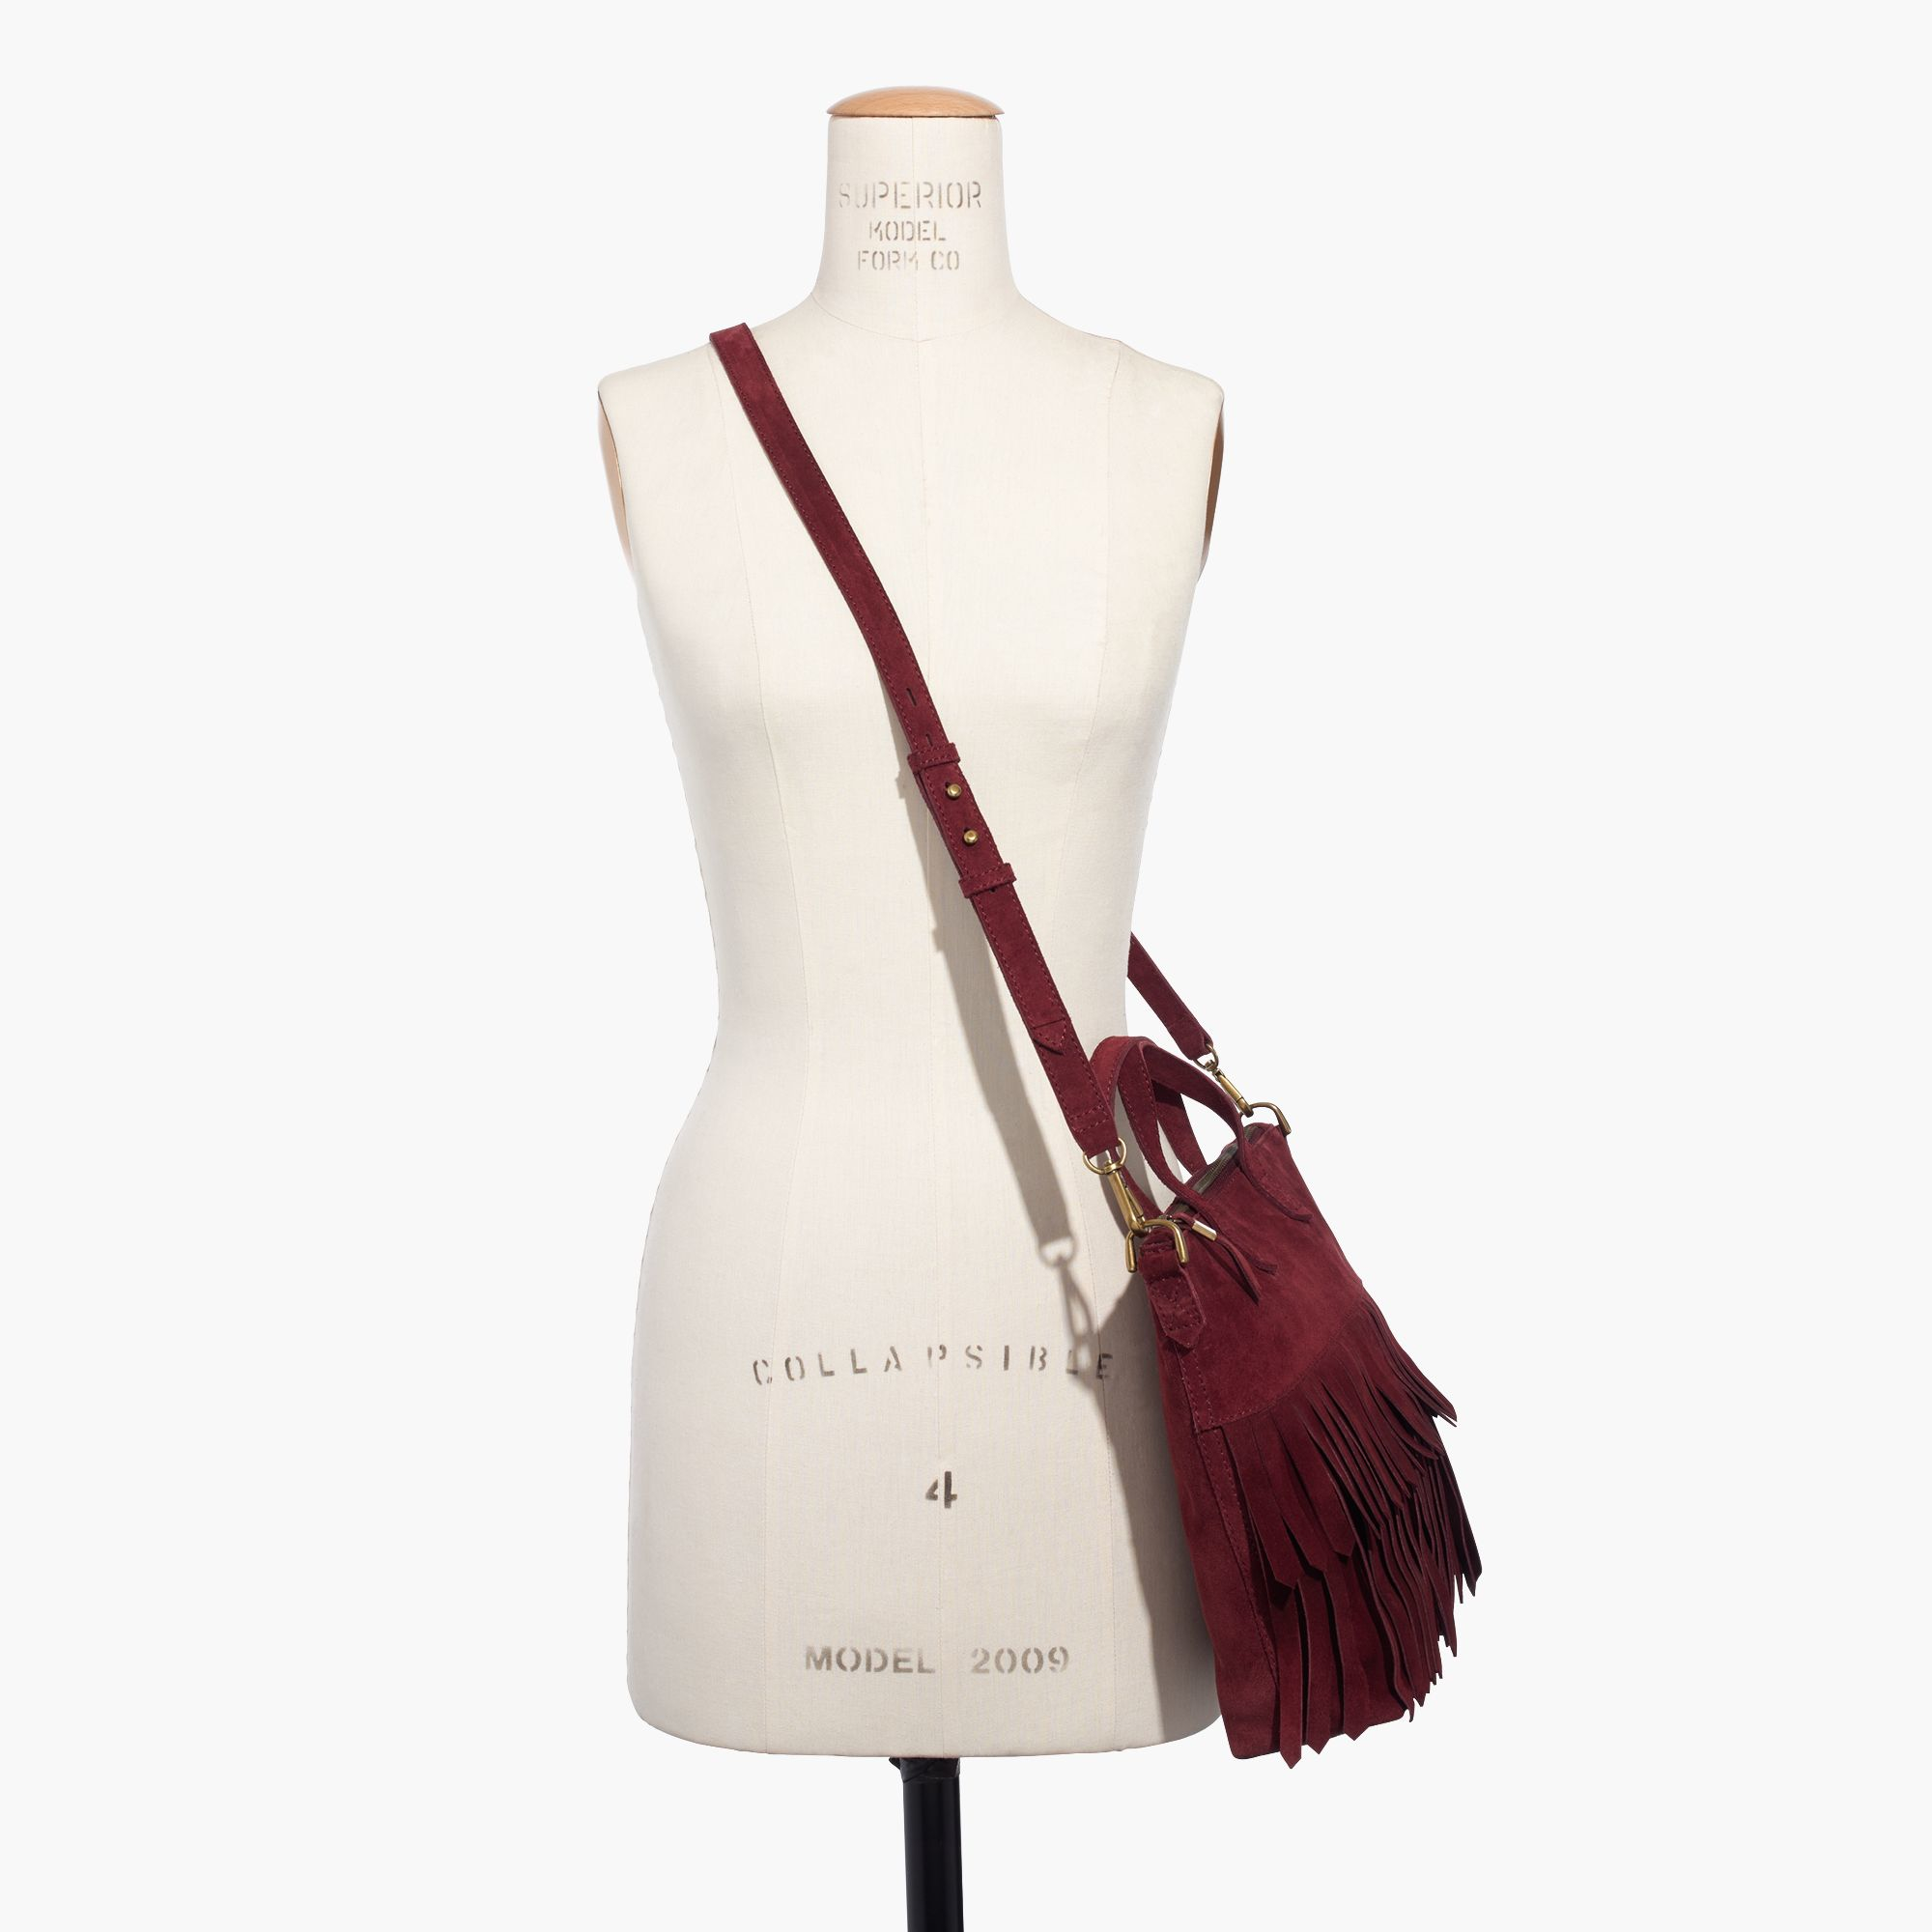 Madewell The Transport Crossbody: Suede Fringe Edition in Red